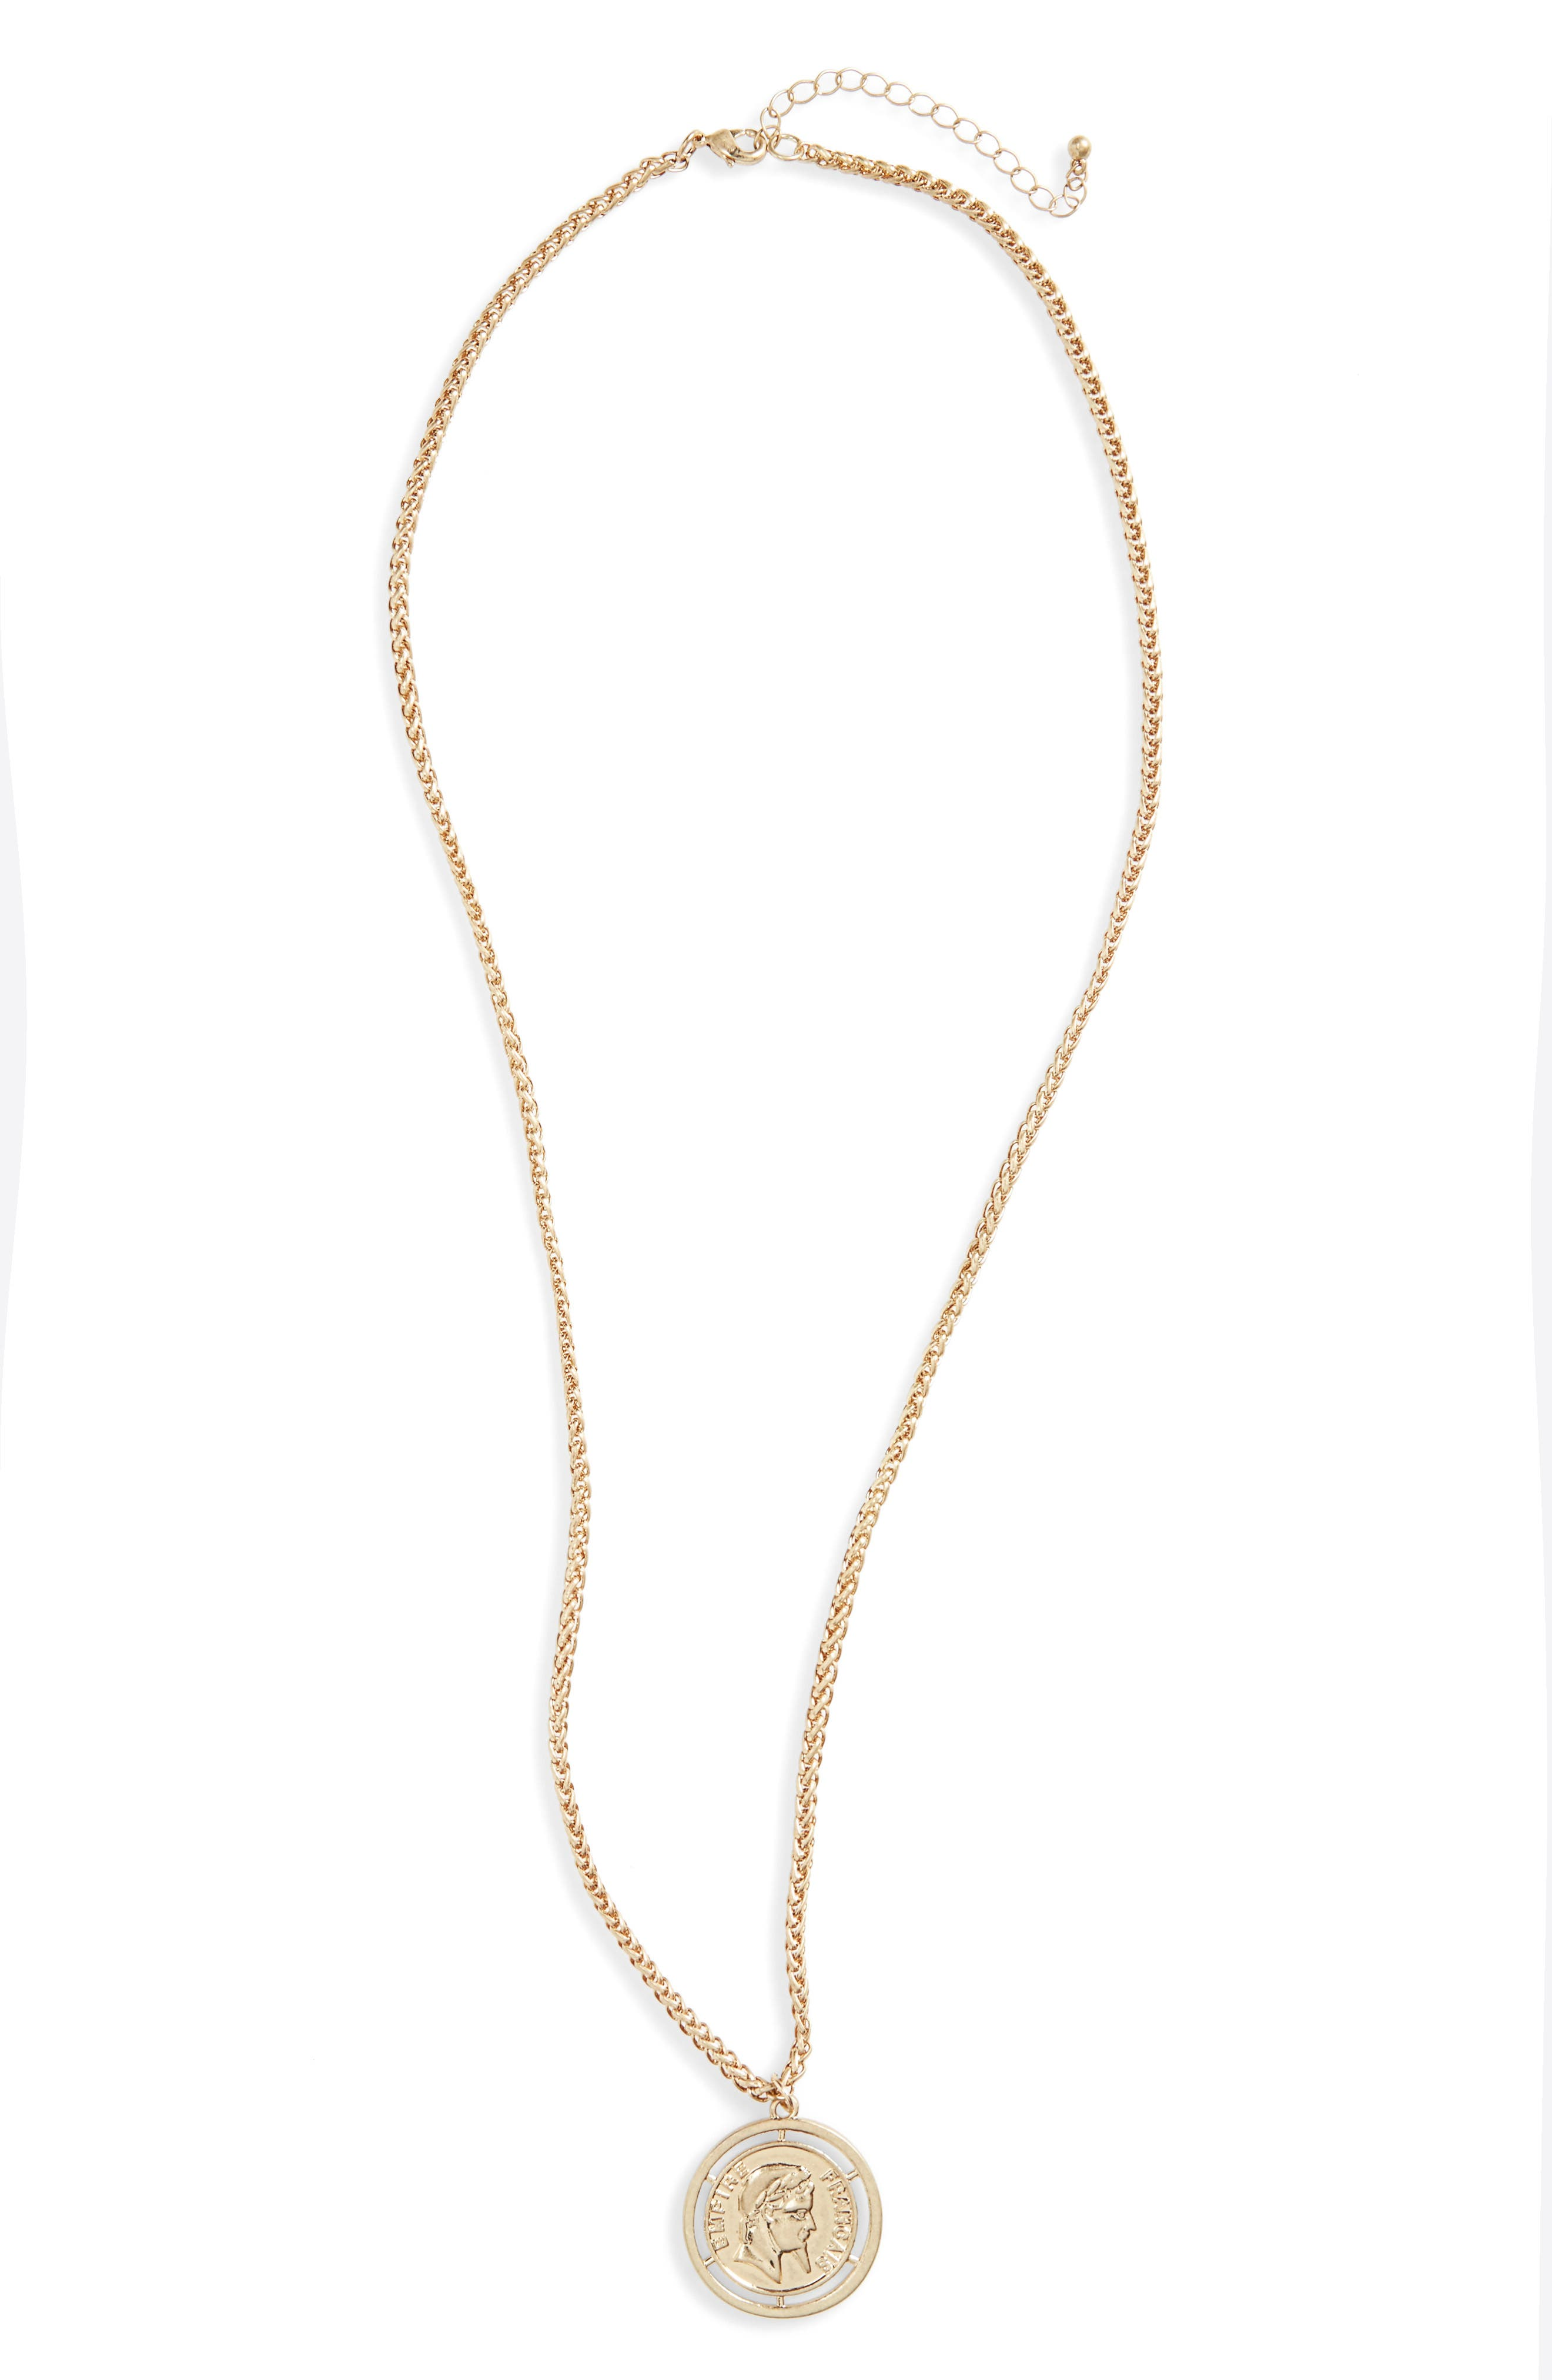 Coin Pendant Necklace,                         Main,                         color, Gold